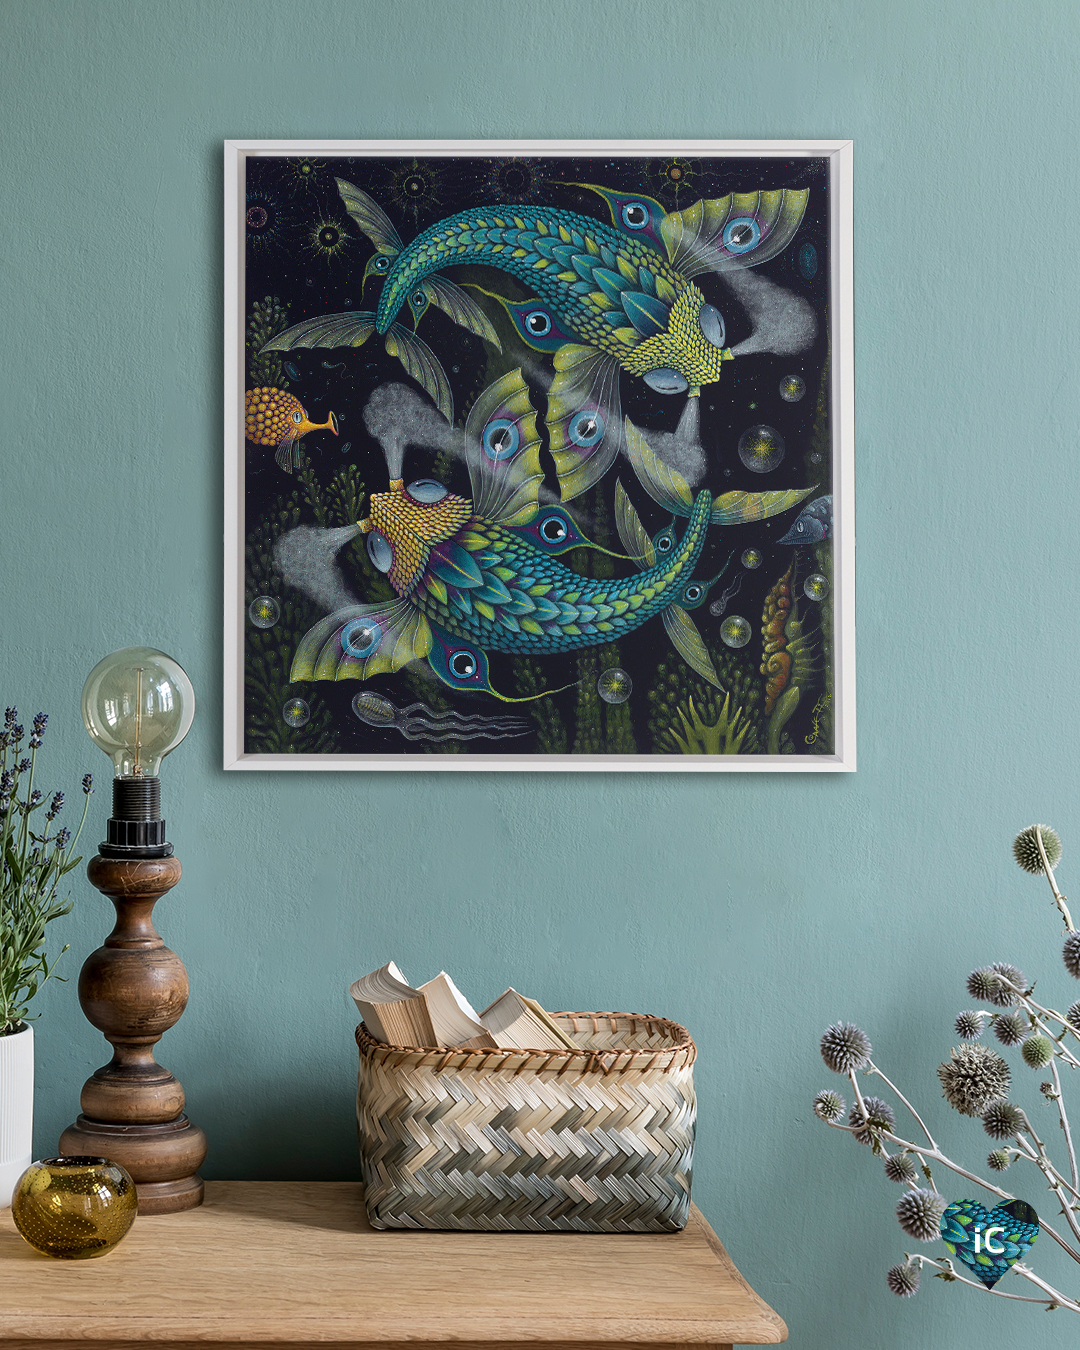 Two blue and green flying fish swimming in a circle around each other